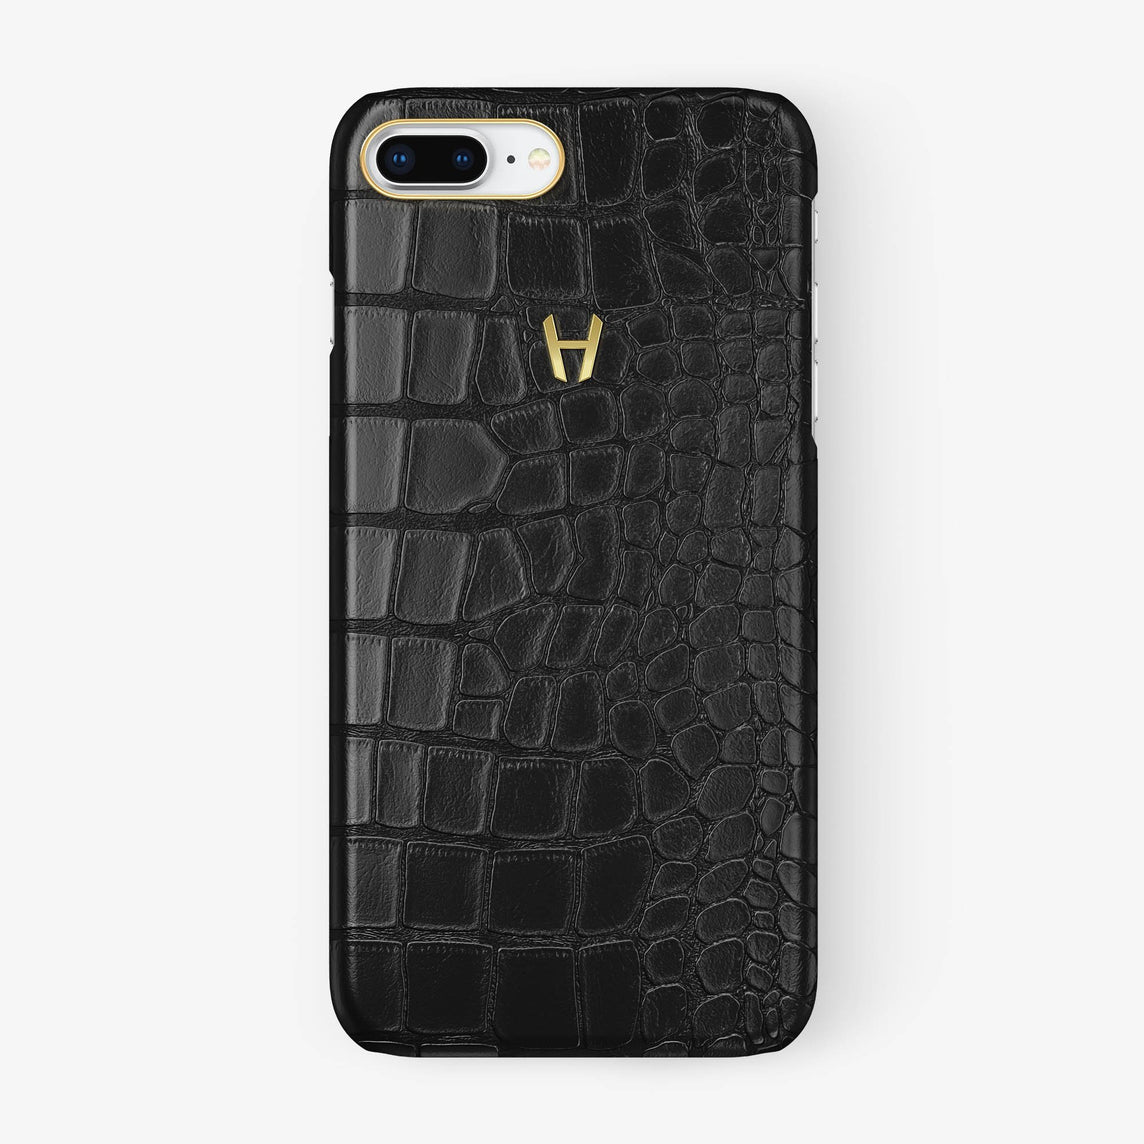 Alligator [iPhone Case] [model:iphone-7p-8p-case] [colour:black] [finishing:yellow-gold] - Hadoro